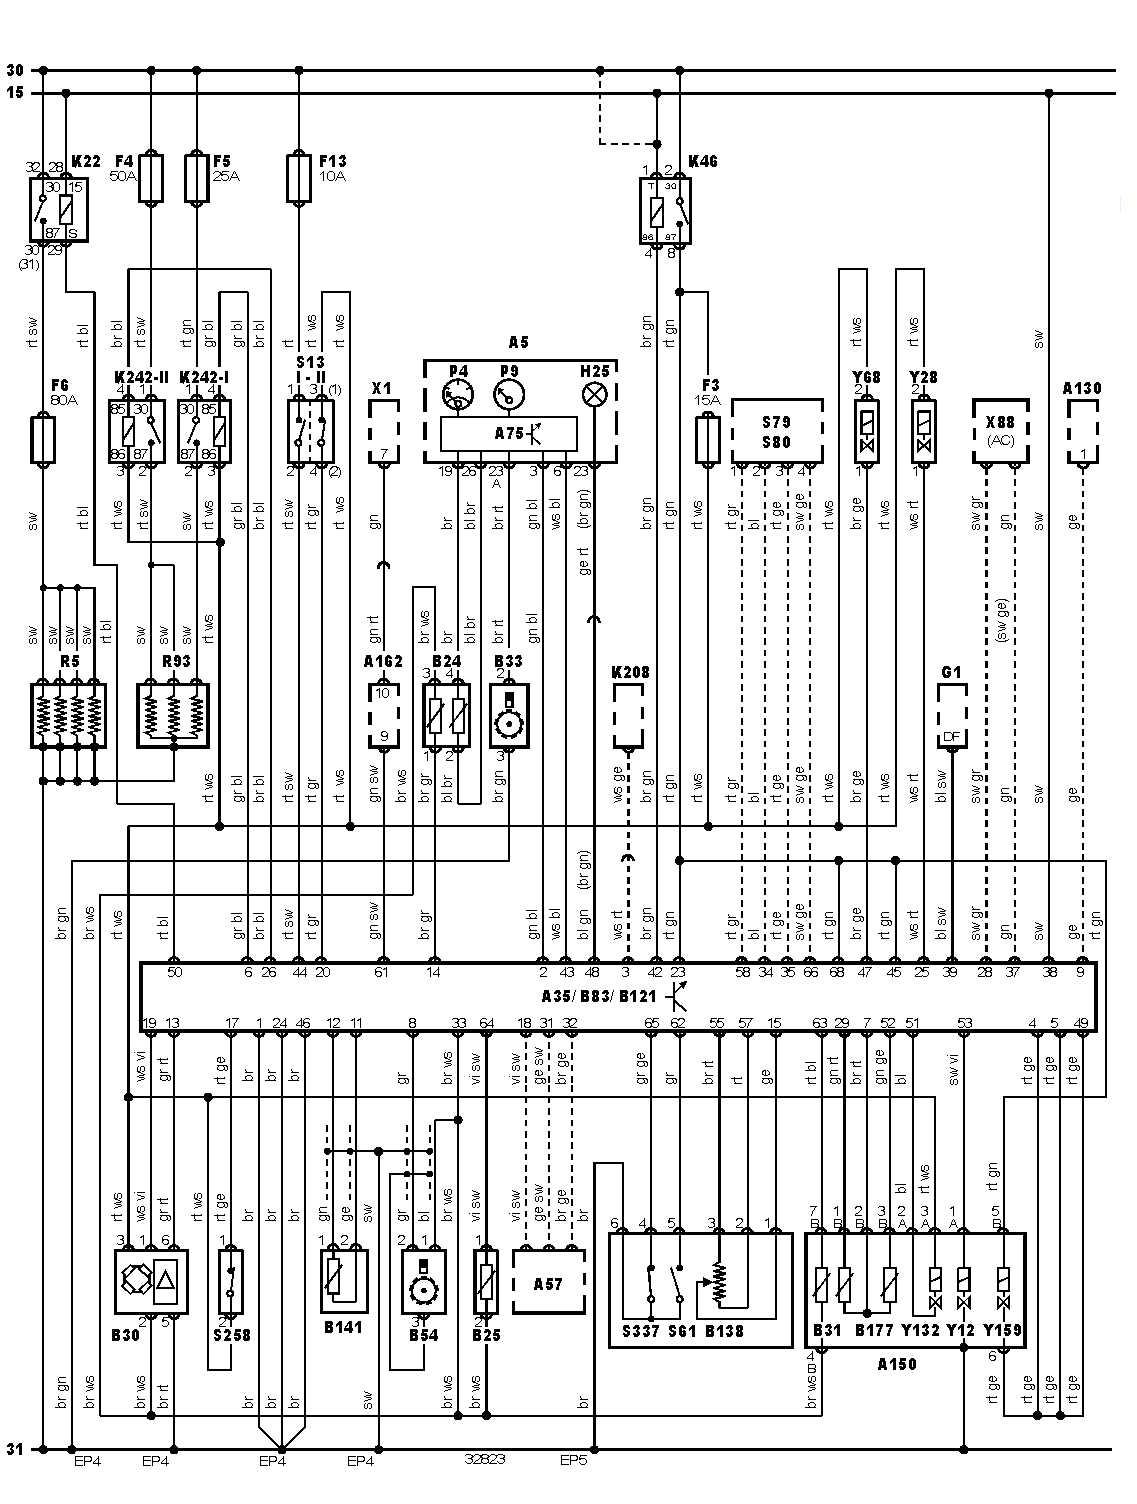 Vw Mk3 Jetta Instrument Cluster Wiring Diagram on 98 05 Vw Beetle